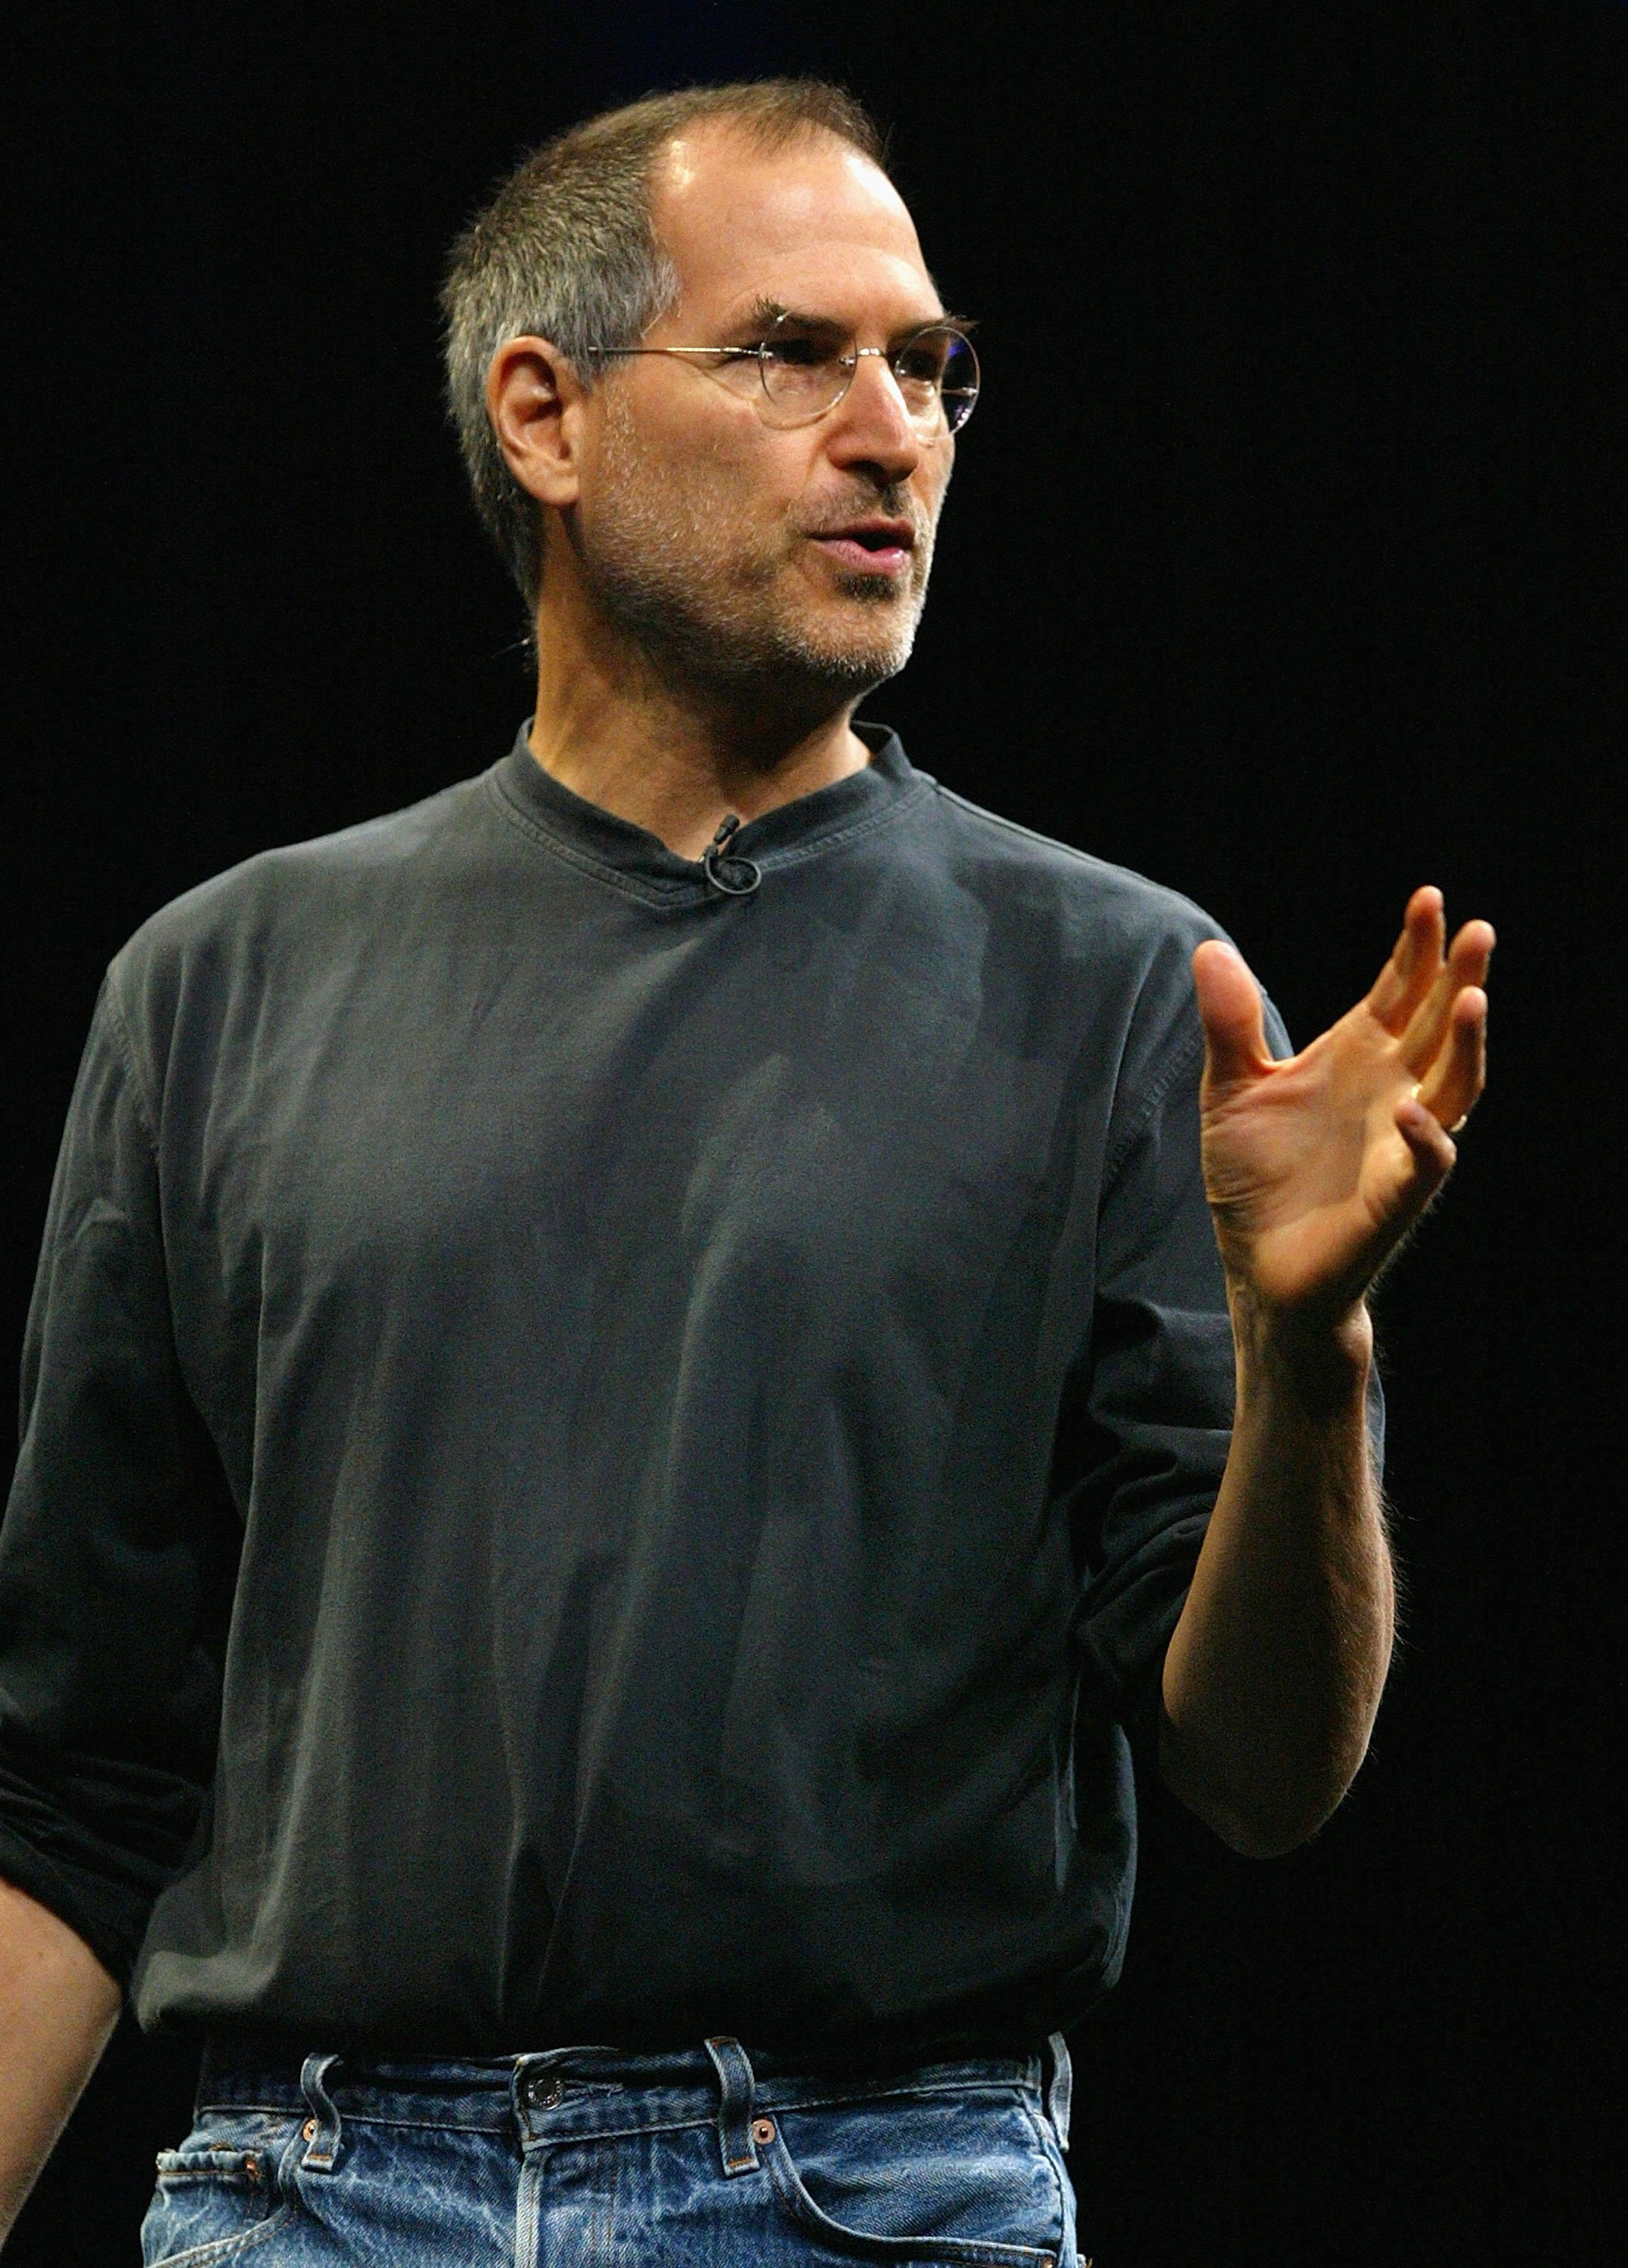 Steve Jobs delivers the keynote address at the 2004 Worldwide Developers Conference June 28, 2004, in San Francisco, California.   Source: Getty Images.